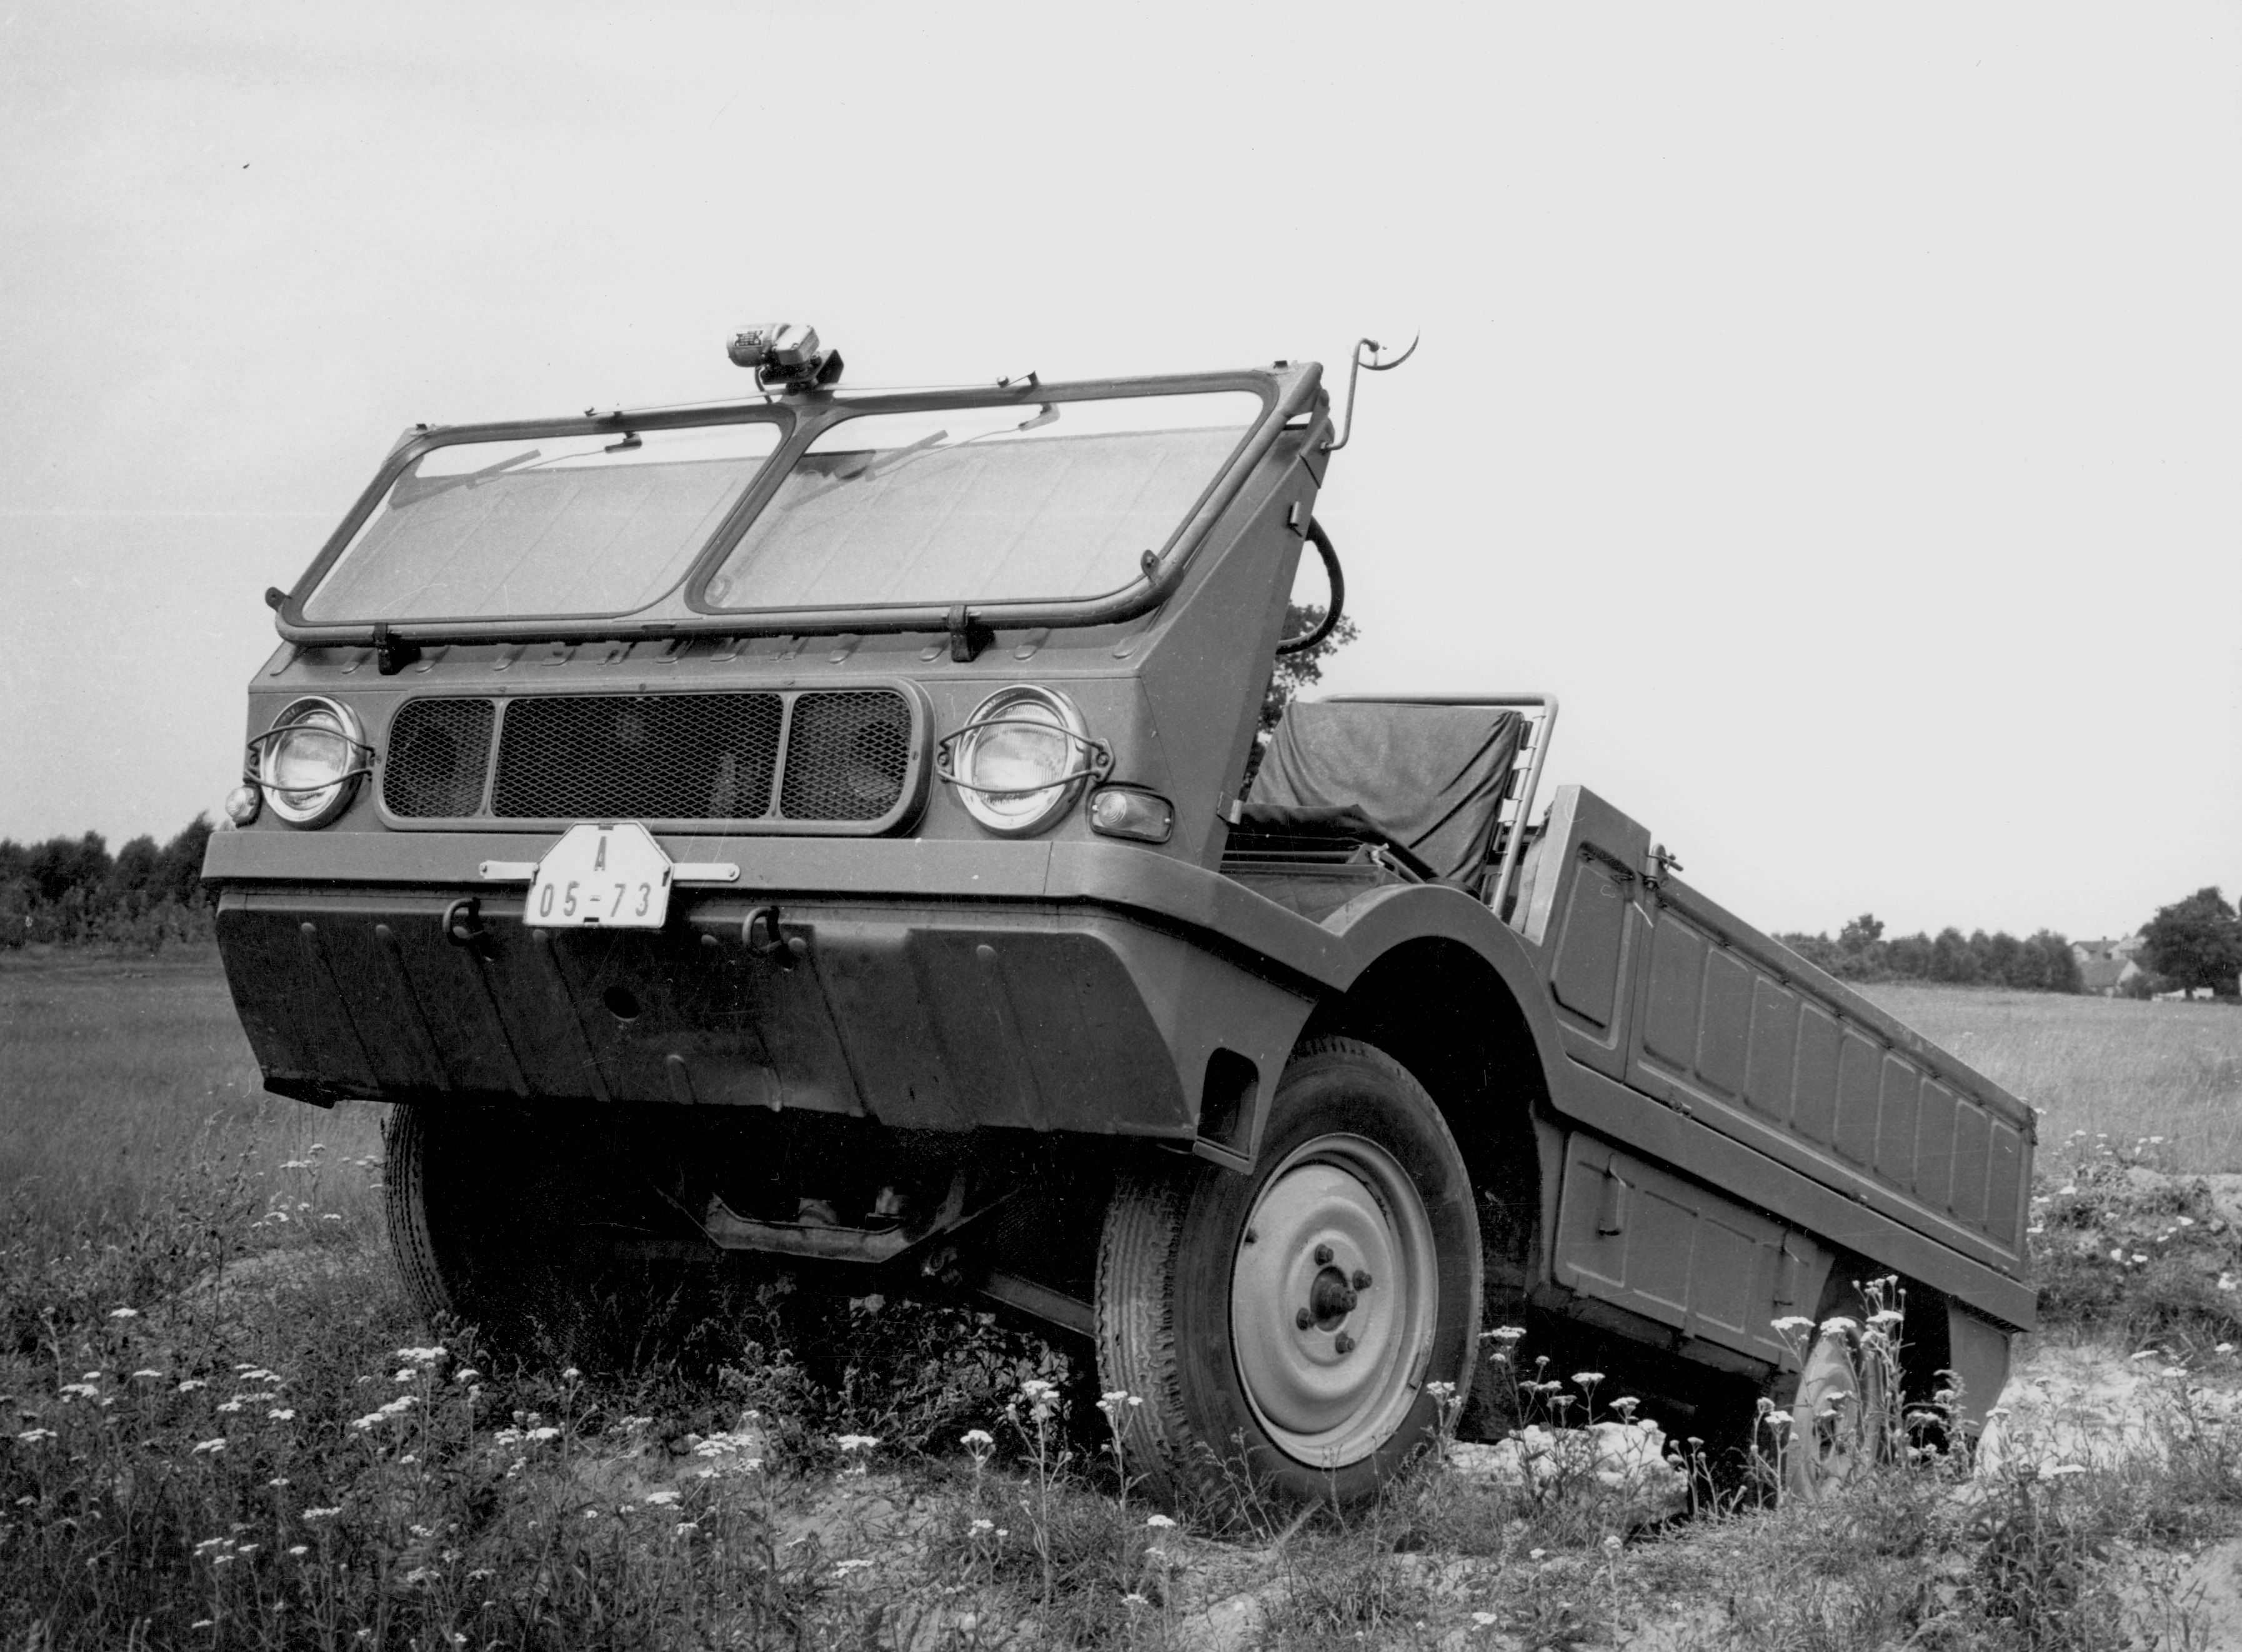 Lesser-known models from SKODA AUTO's 125-year history: Type 998 'Agromobil' from 1962 - Image 5